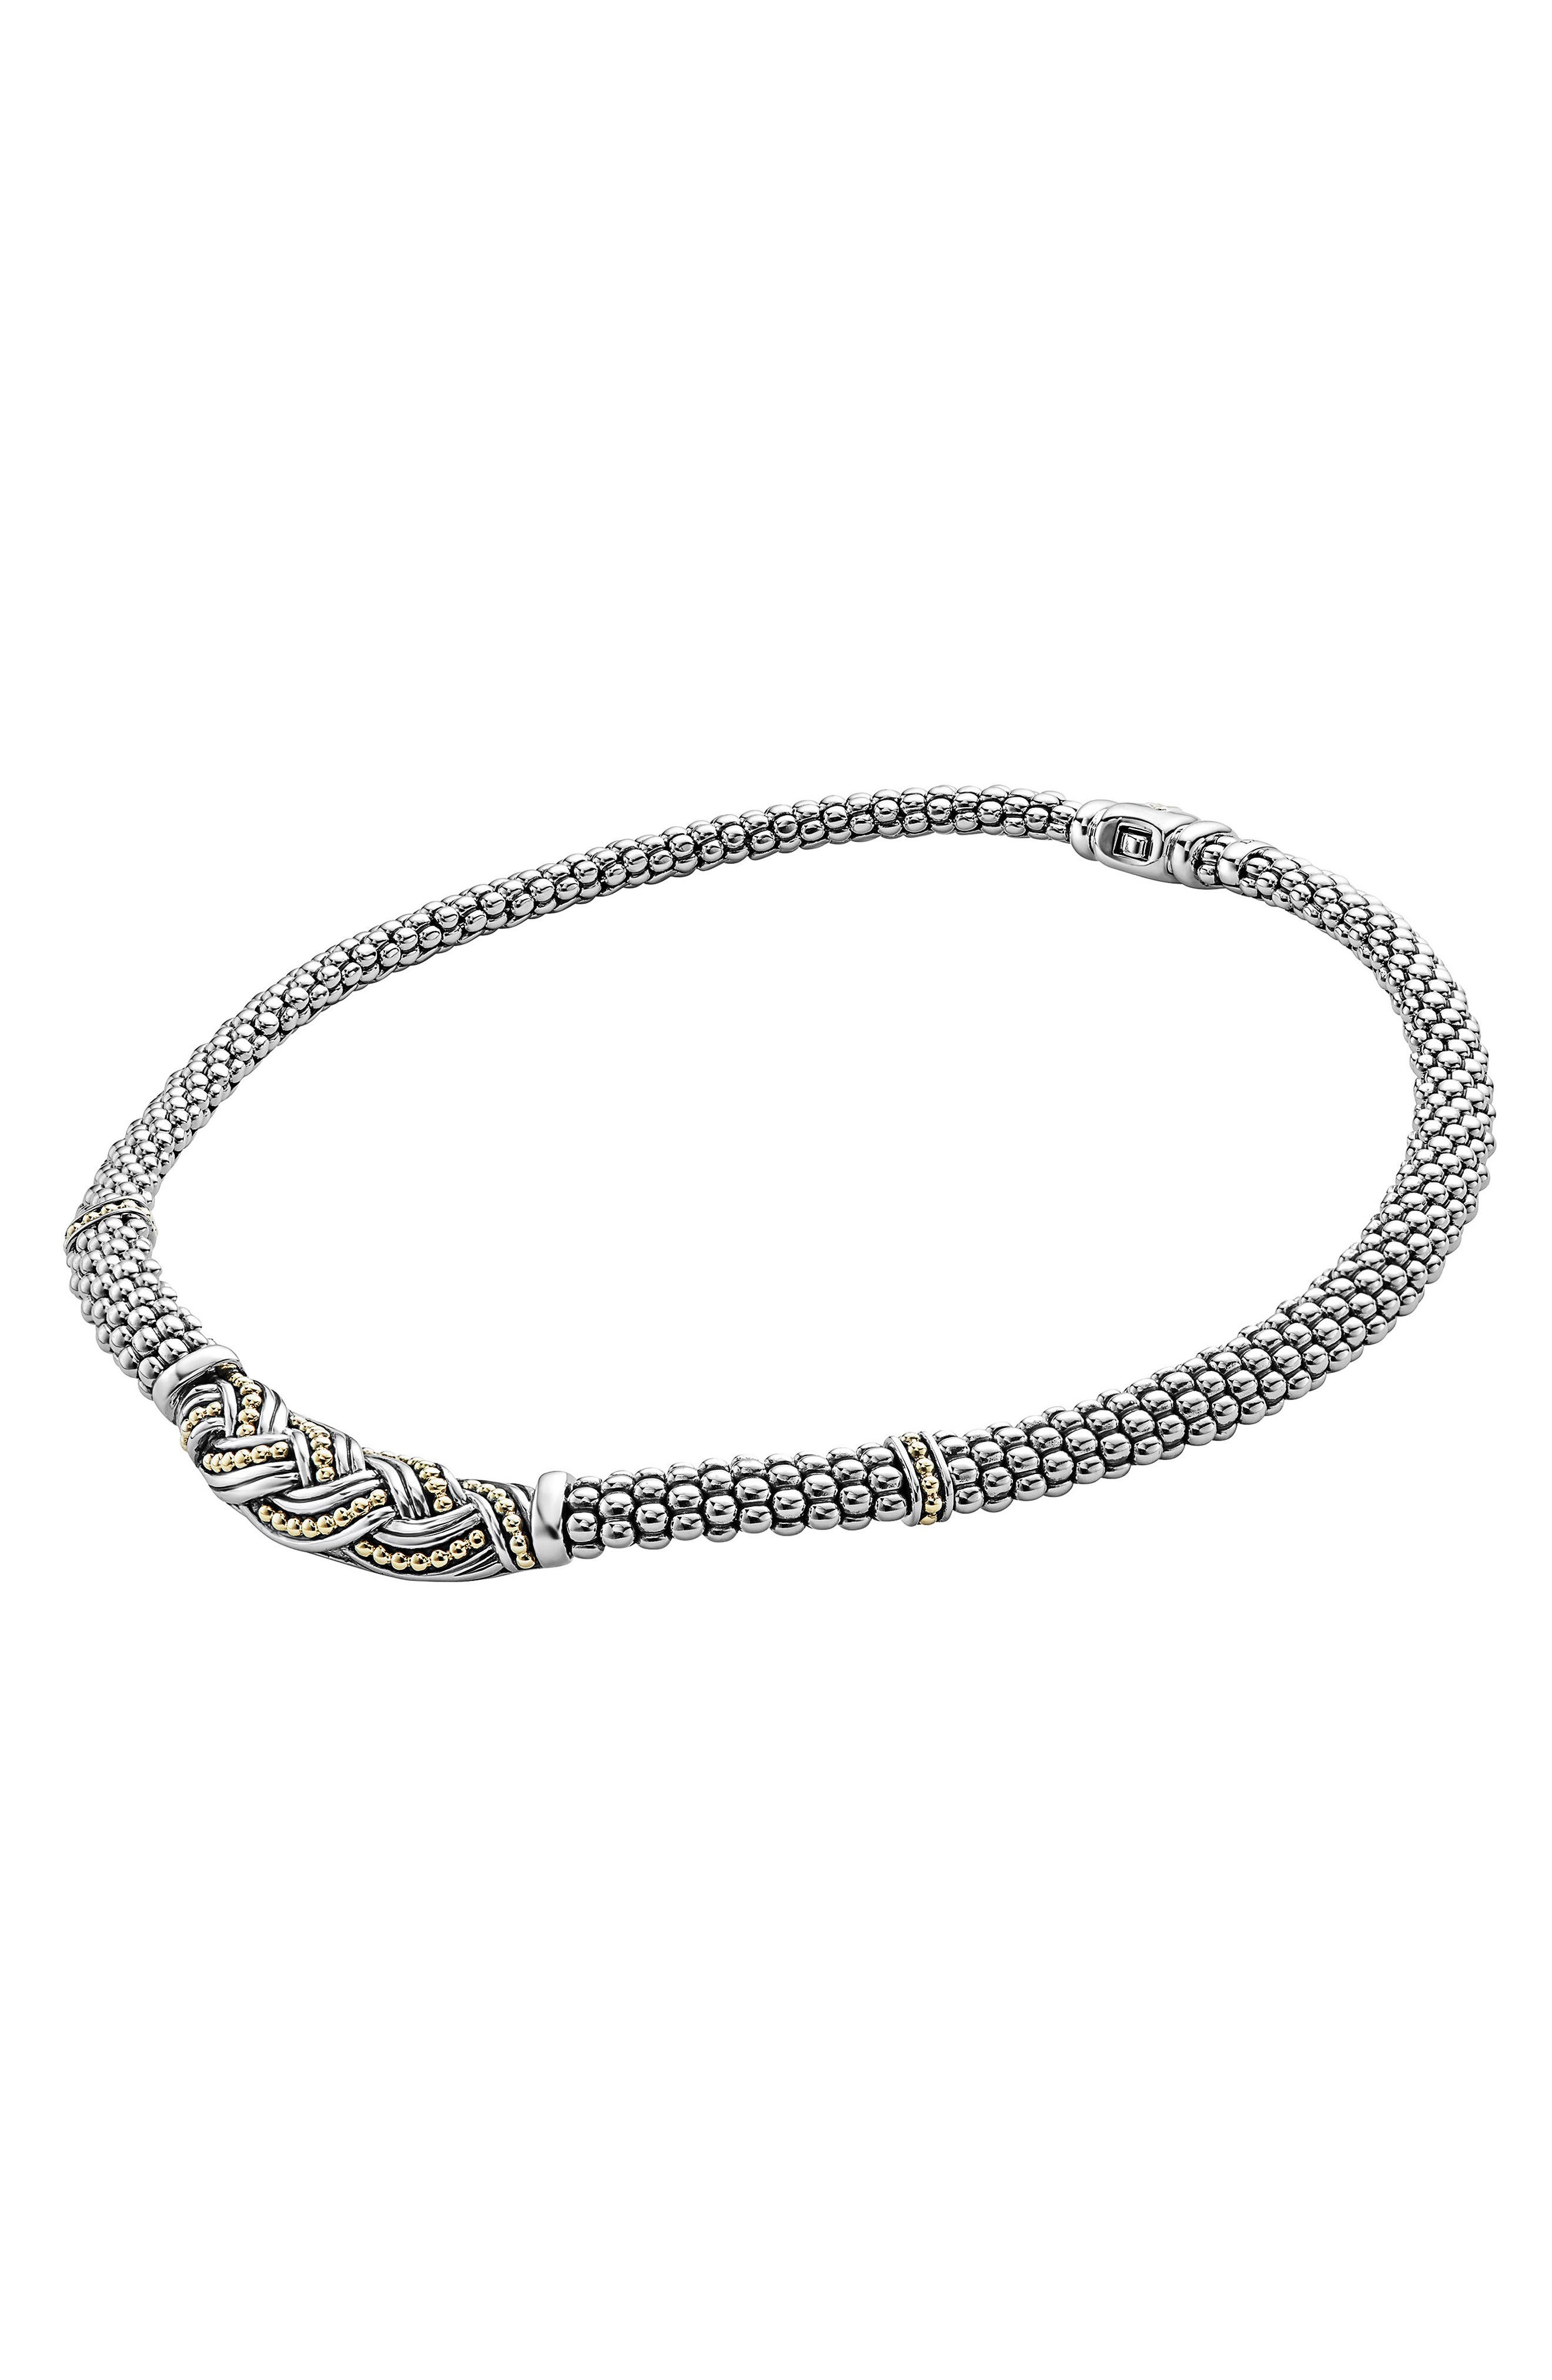 Torsade Rope Necklace,                             Alternate thumbnail 2, color,                             SILVER/ GOLD